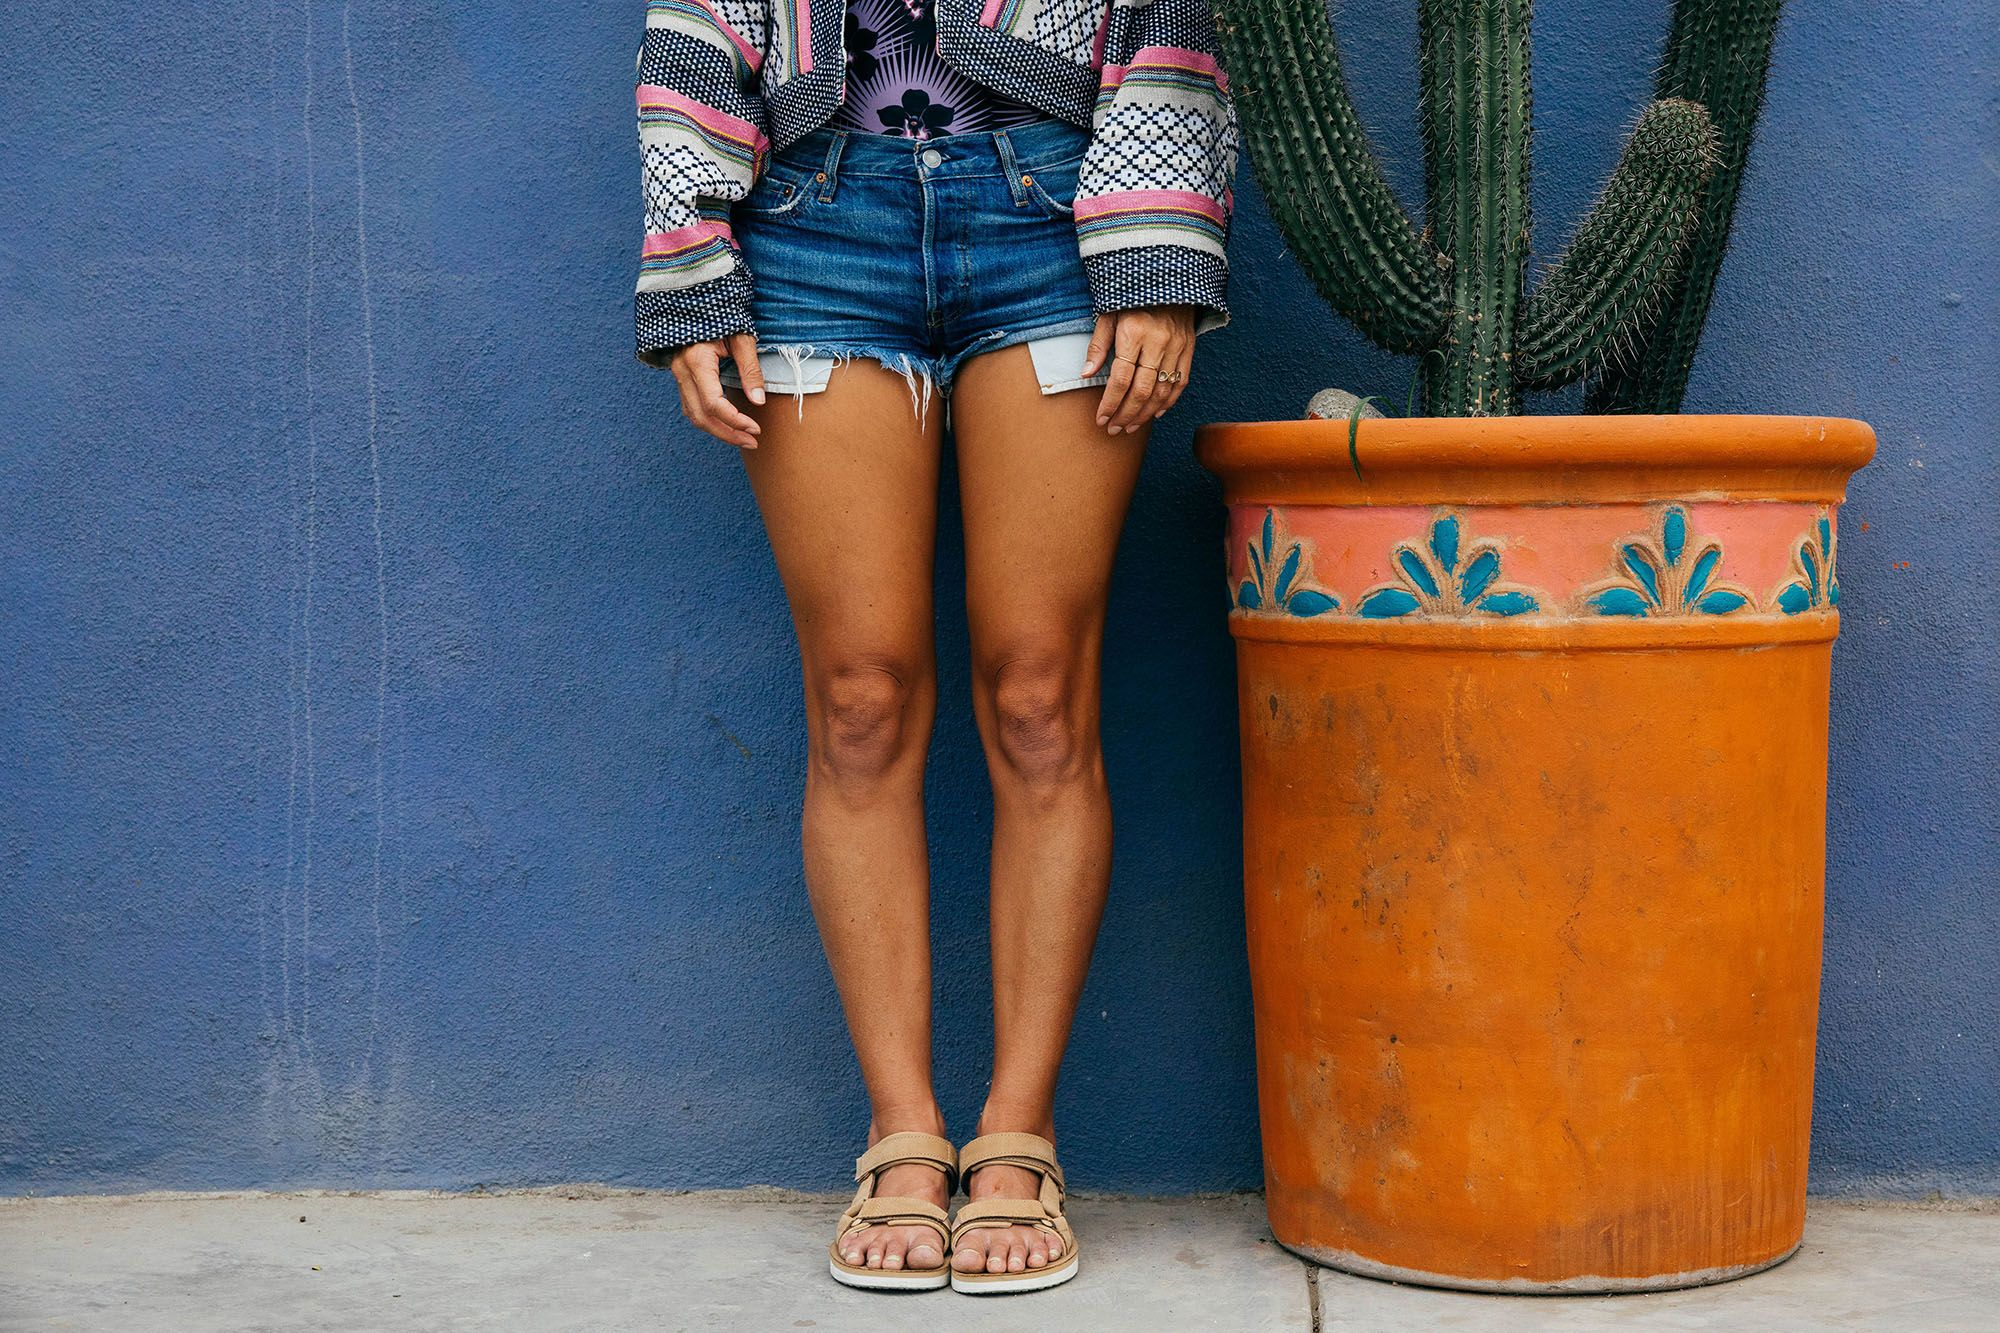 53108d9678e47c Cutoffs, sandals, and cactus aesthetics- there's so much to look forward to  this time of the year. Here's to future spring adventures!